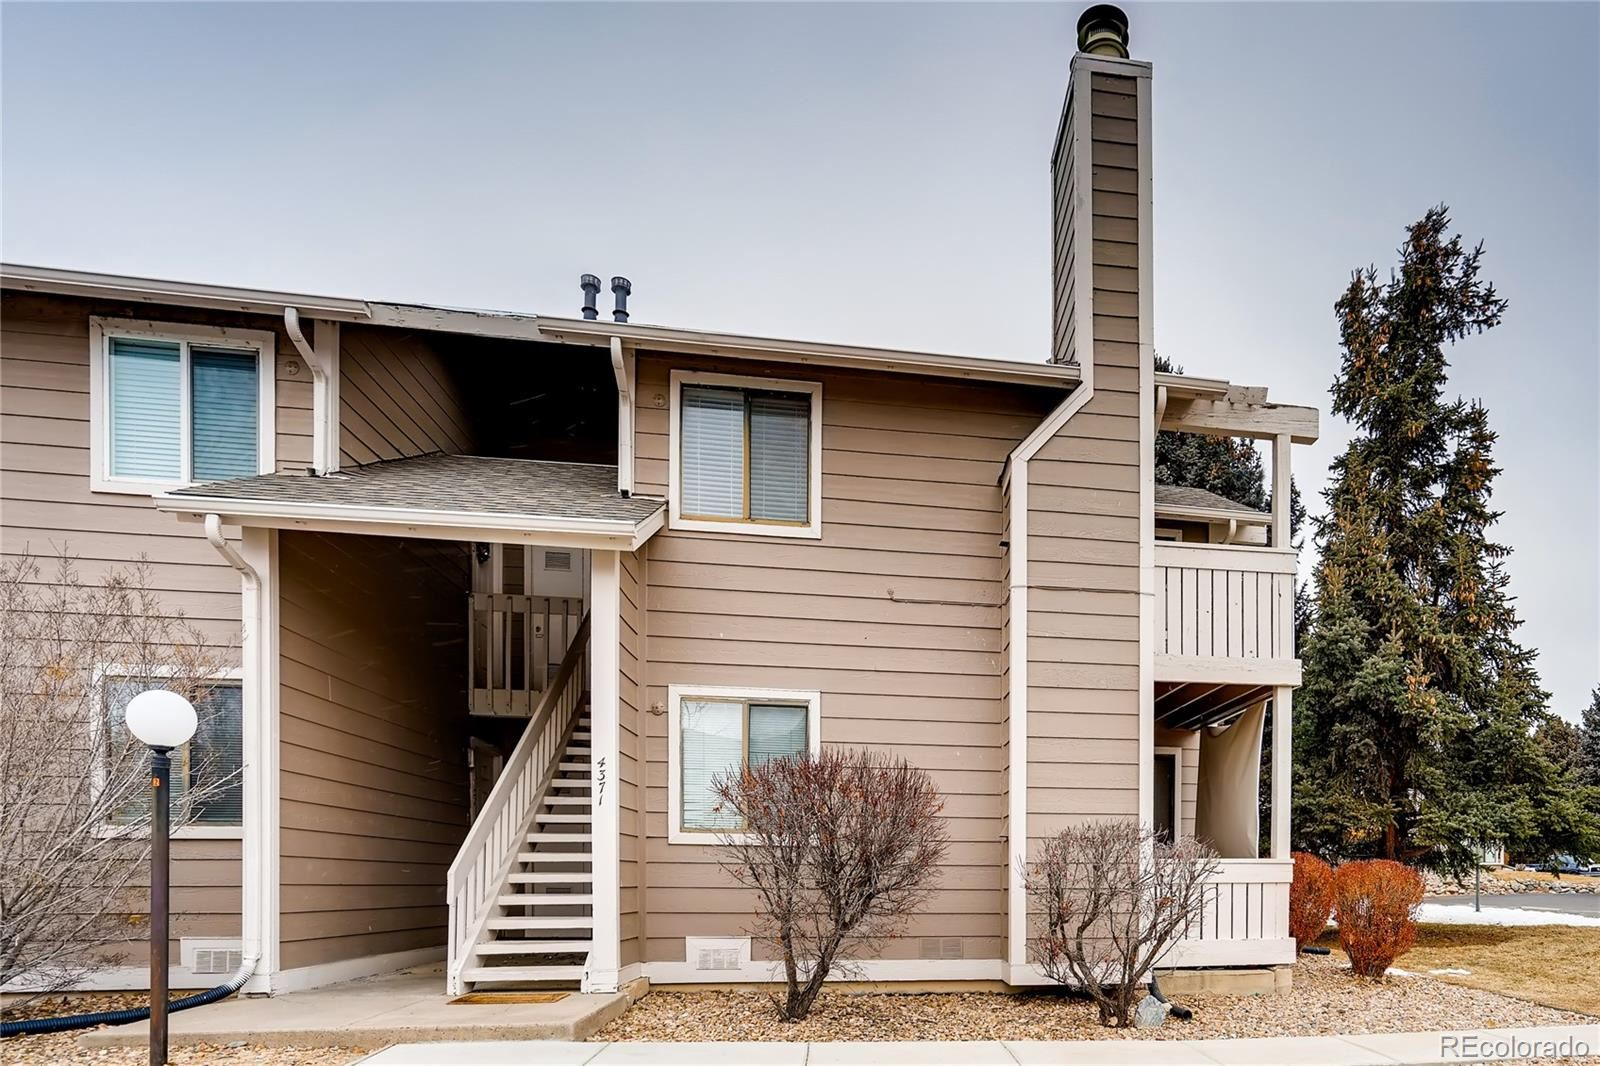 4371 S Andes Way  201 #201, Aurora, CO 80015 - #: 6714692